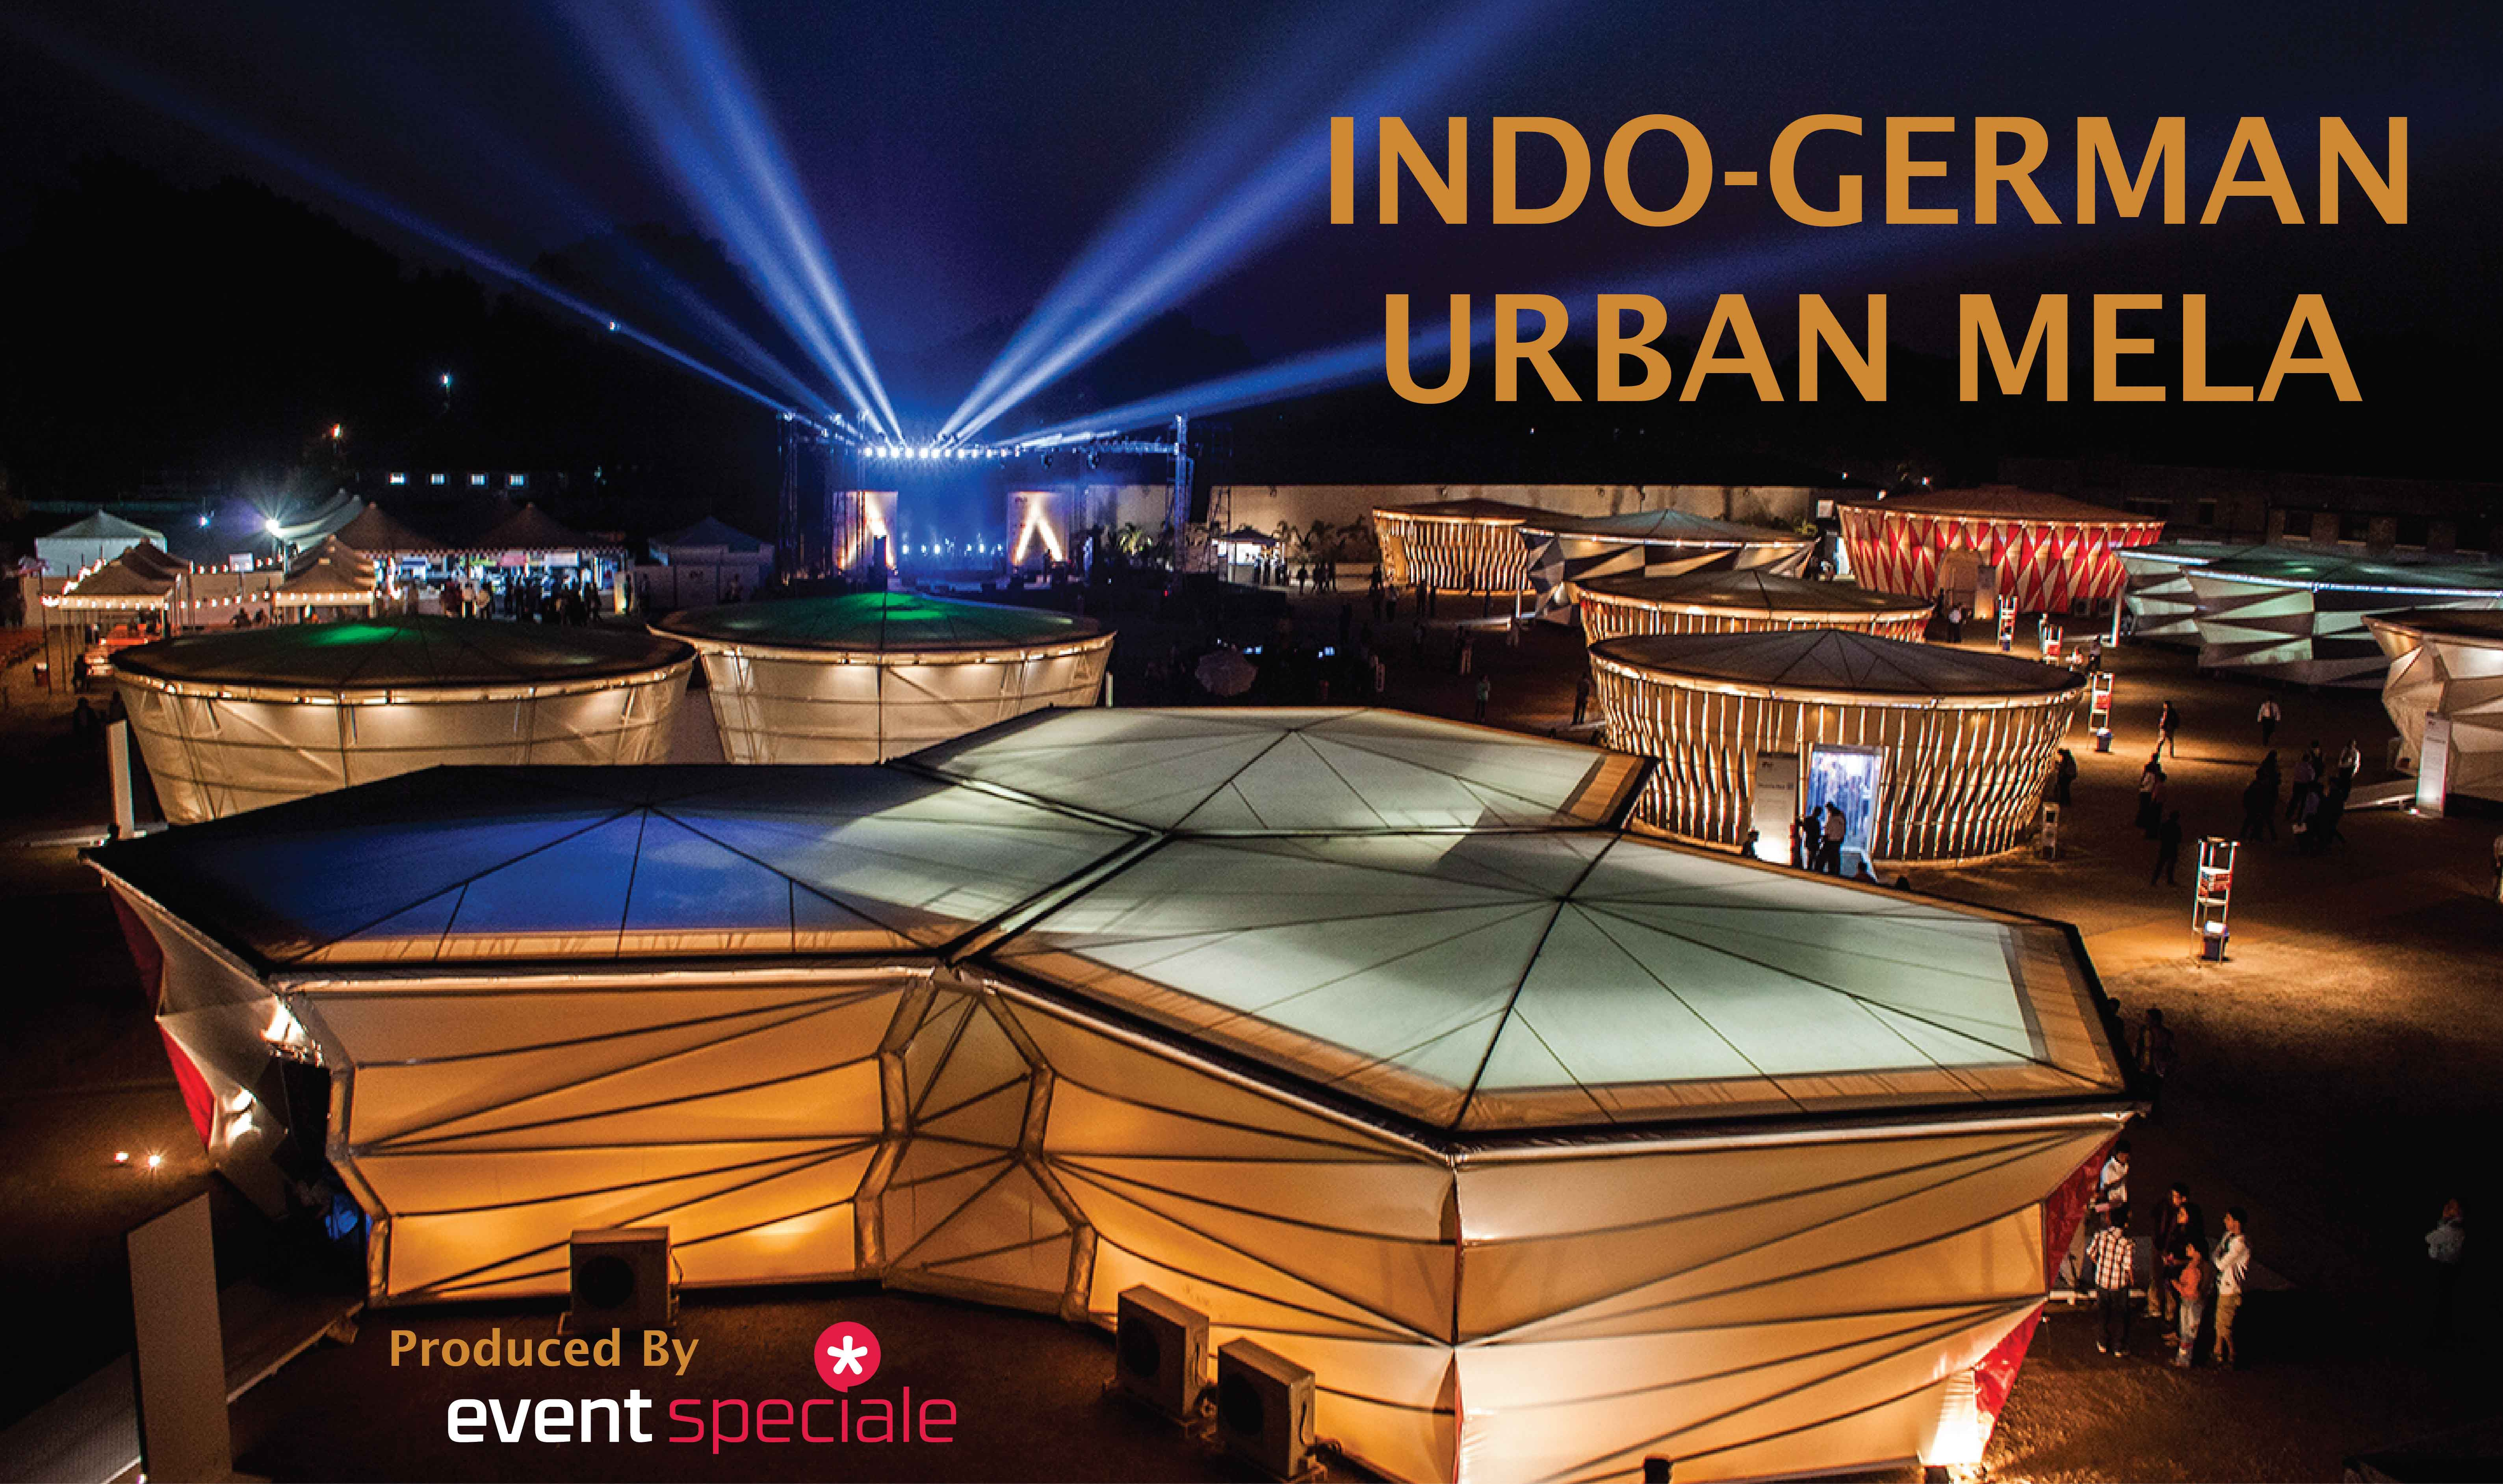 Indo-German Urban Mela